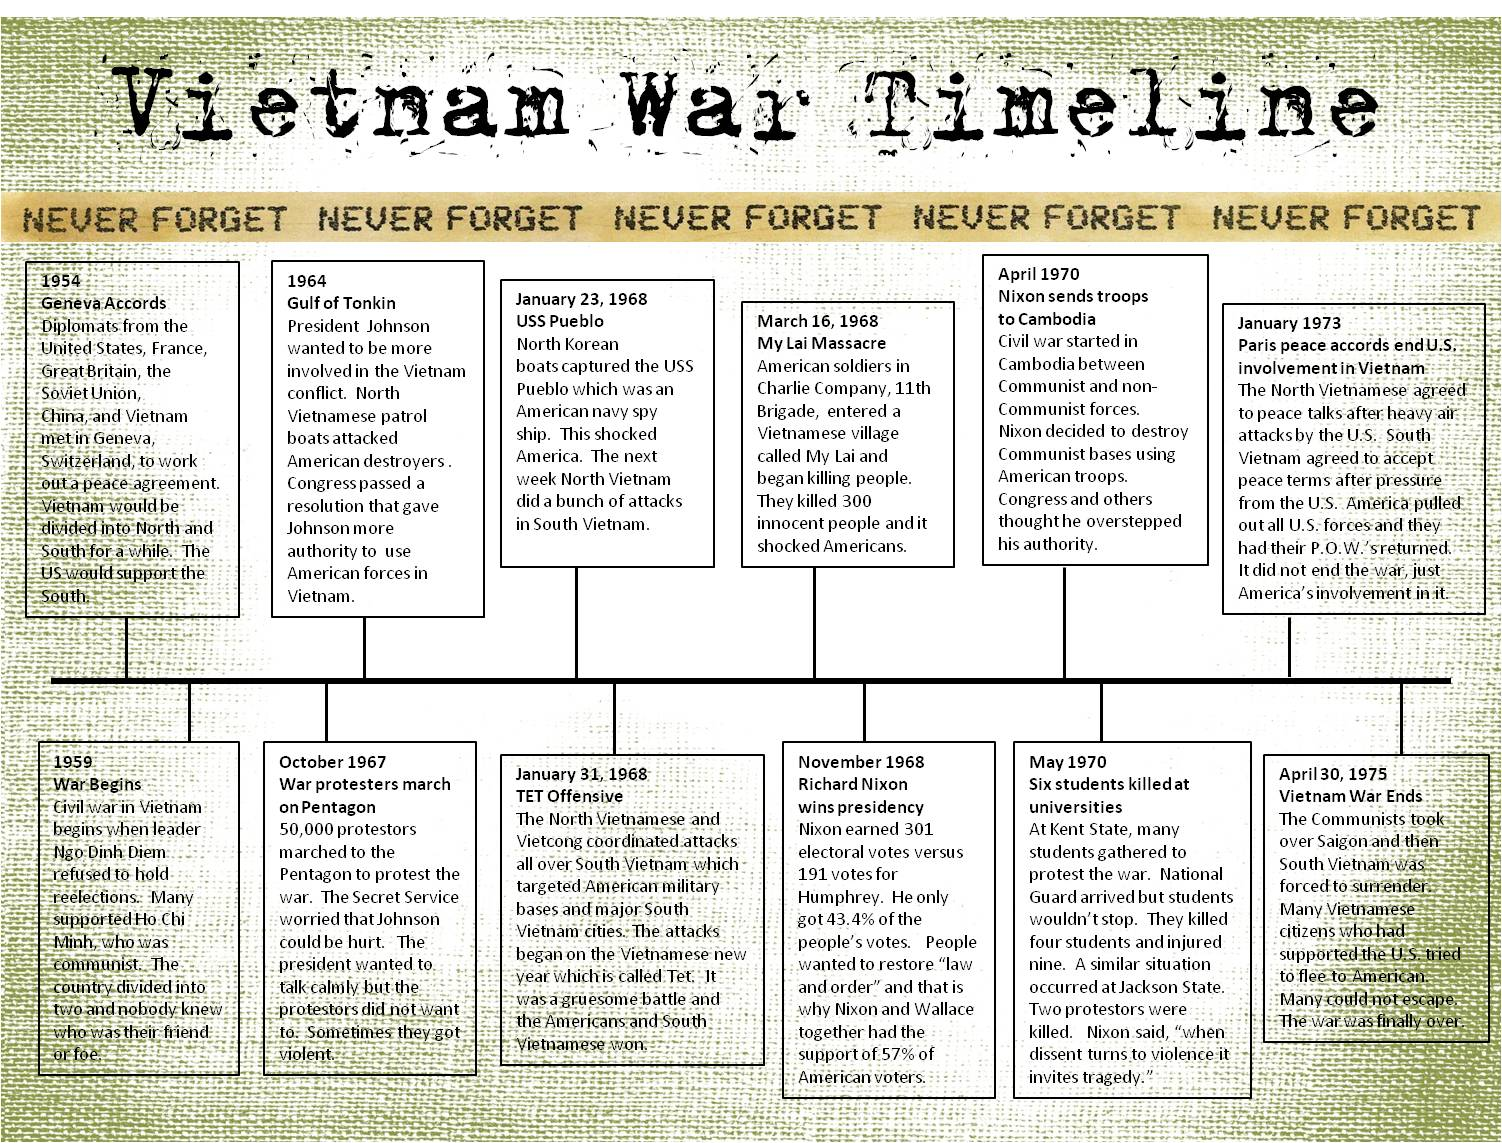 Where did the vietnam war take place